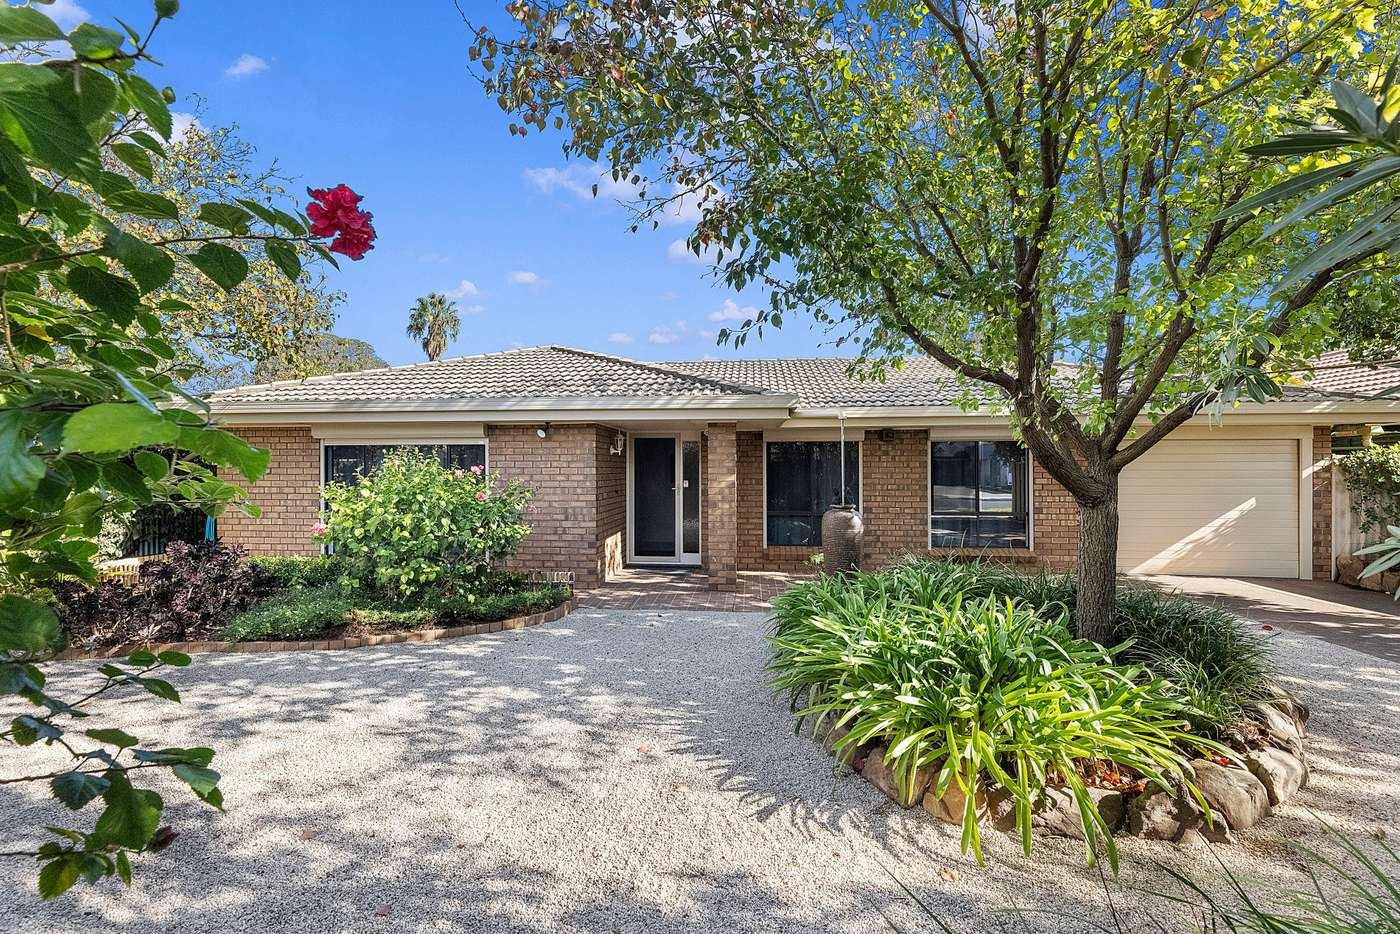 Main view of Homely house listing, 90 Spains Road, Salisbury Downs SA 5108